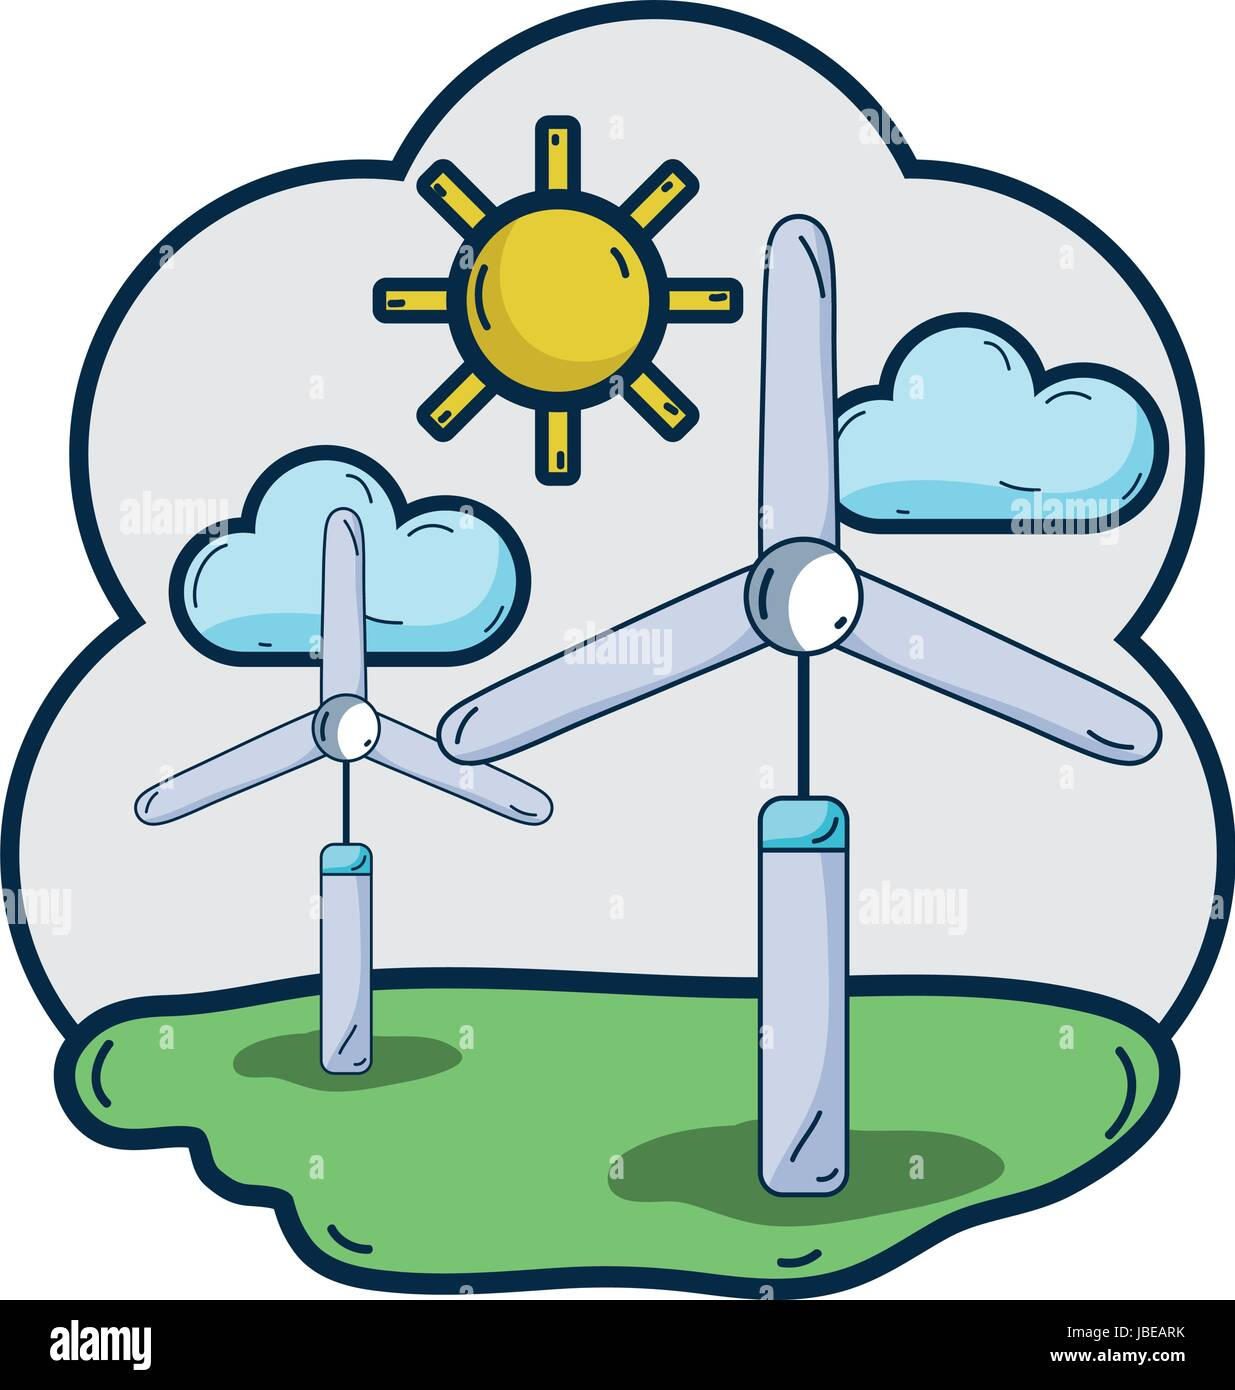 windpower industries to healp the environment - Stock Vector